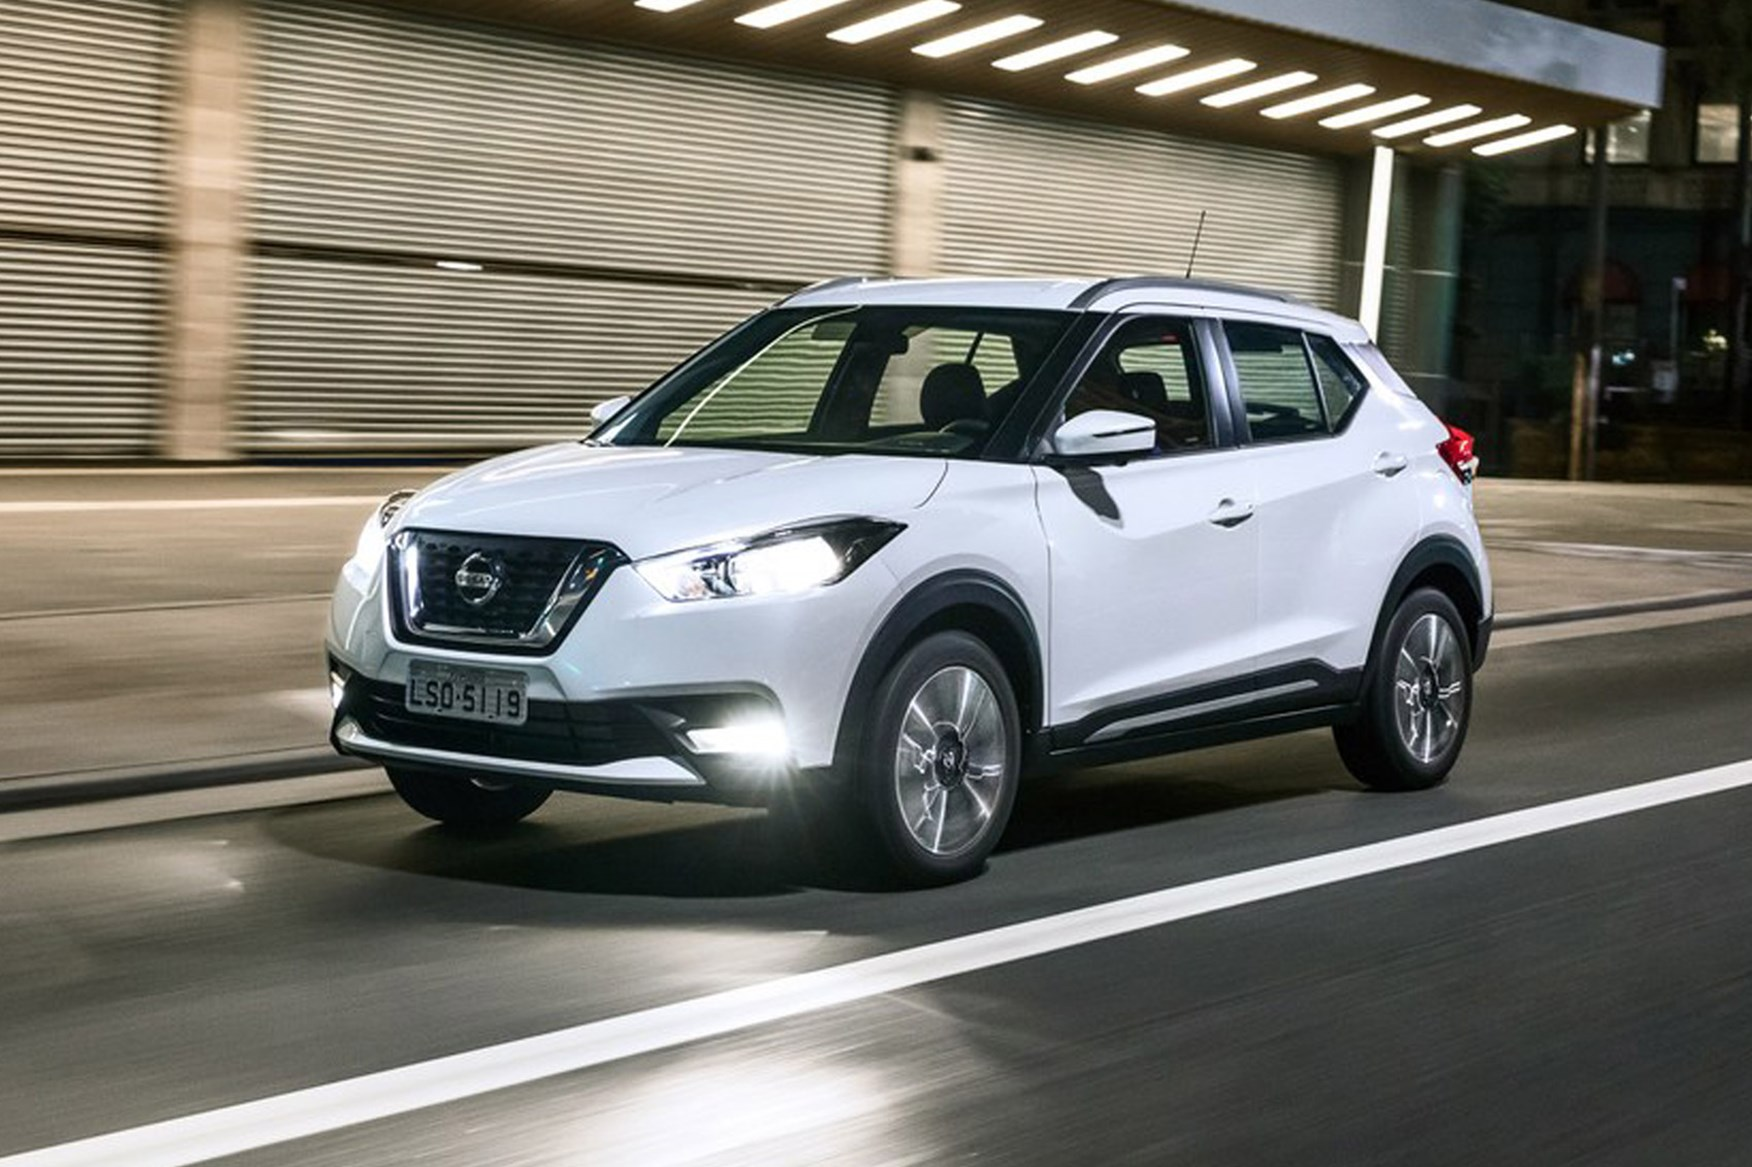 Creta 2017 White >> Nissan Kicks SL 1.6 16v (2016) review | CAR Magazine